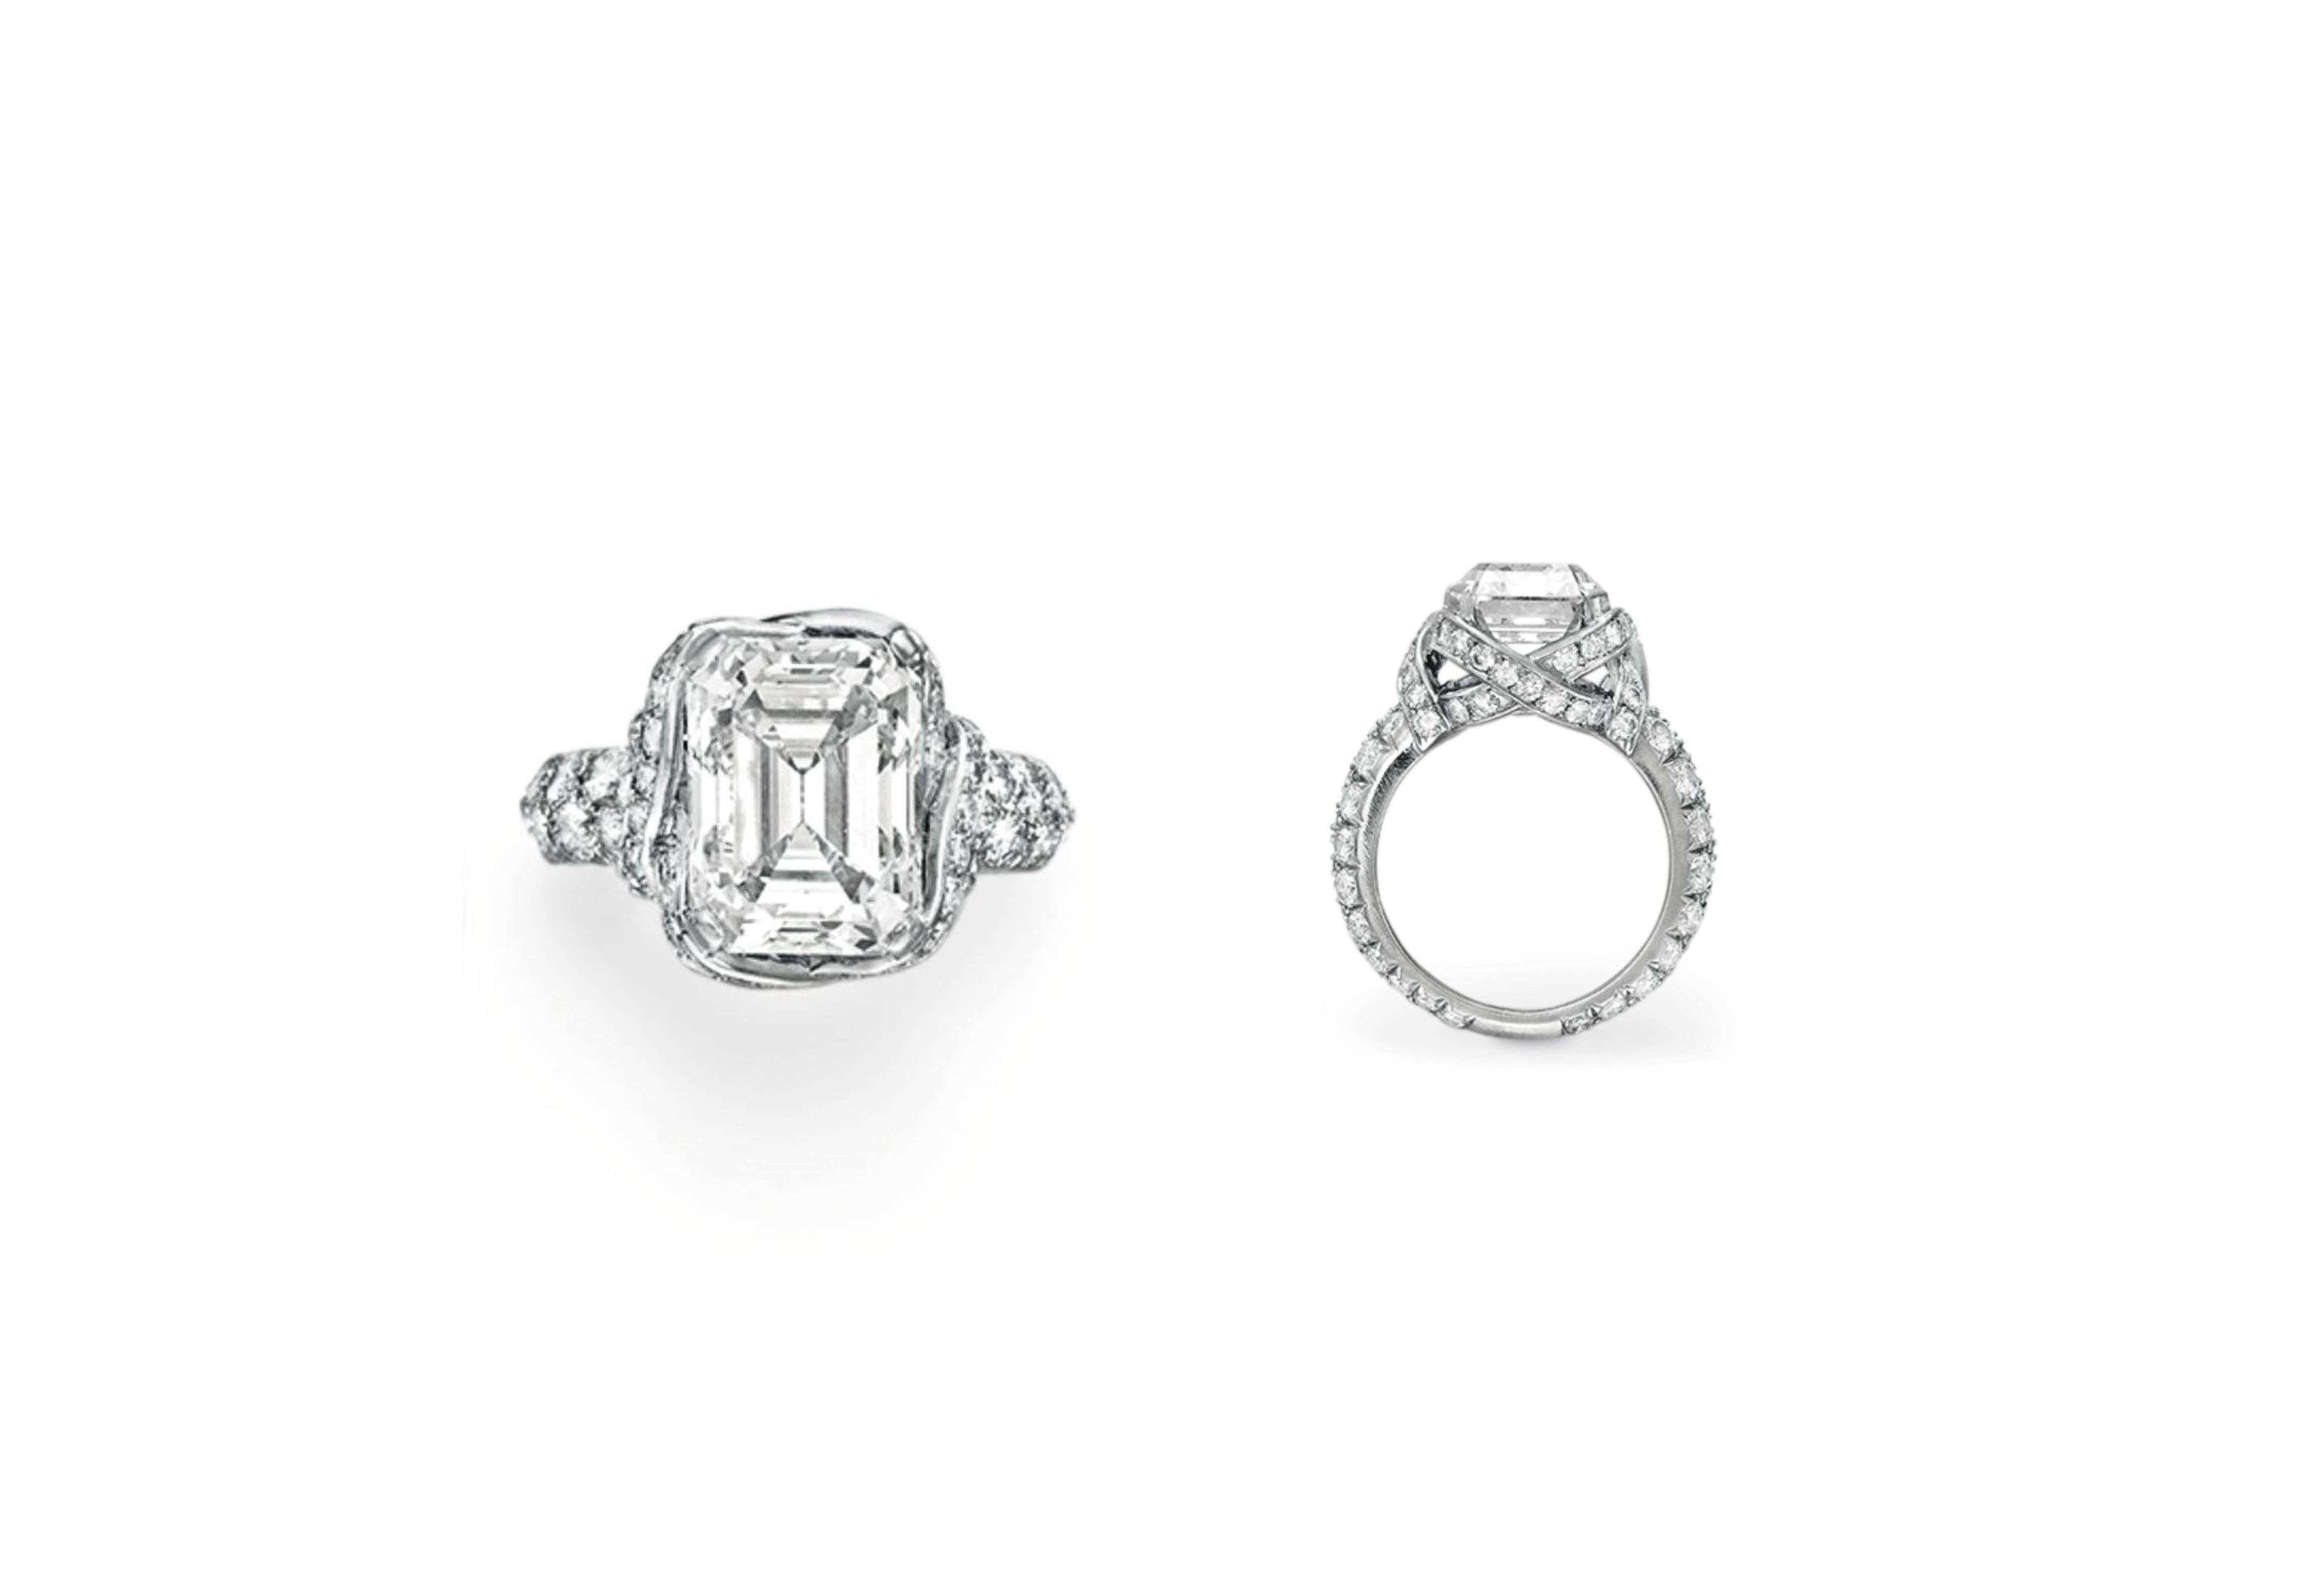 A DIAMOND RING, BY JEAN SCHLUMBERGER FOR TIFFANY & CO.